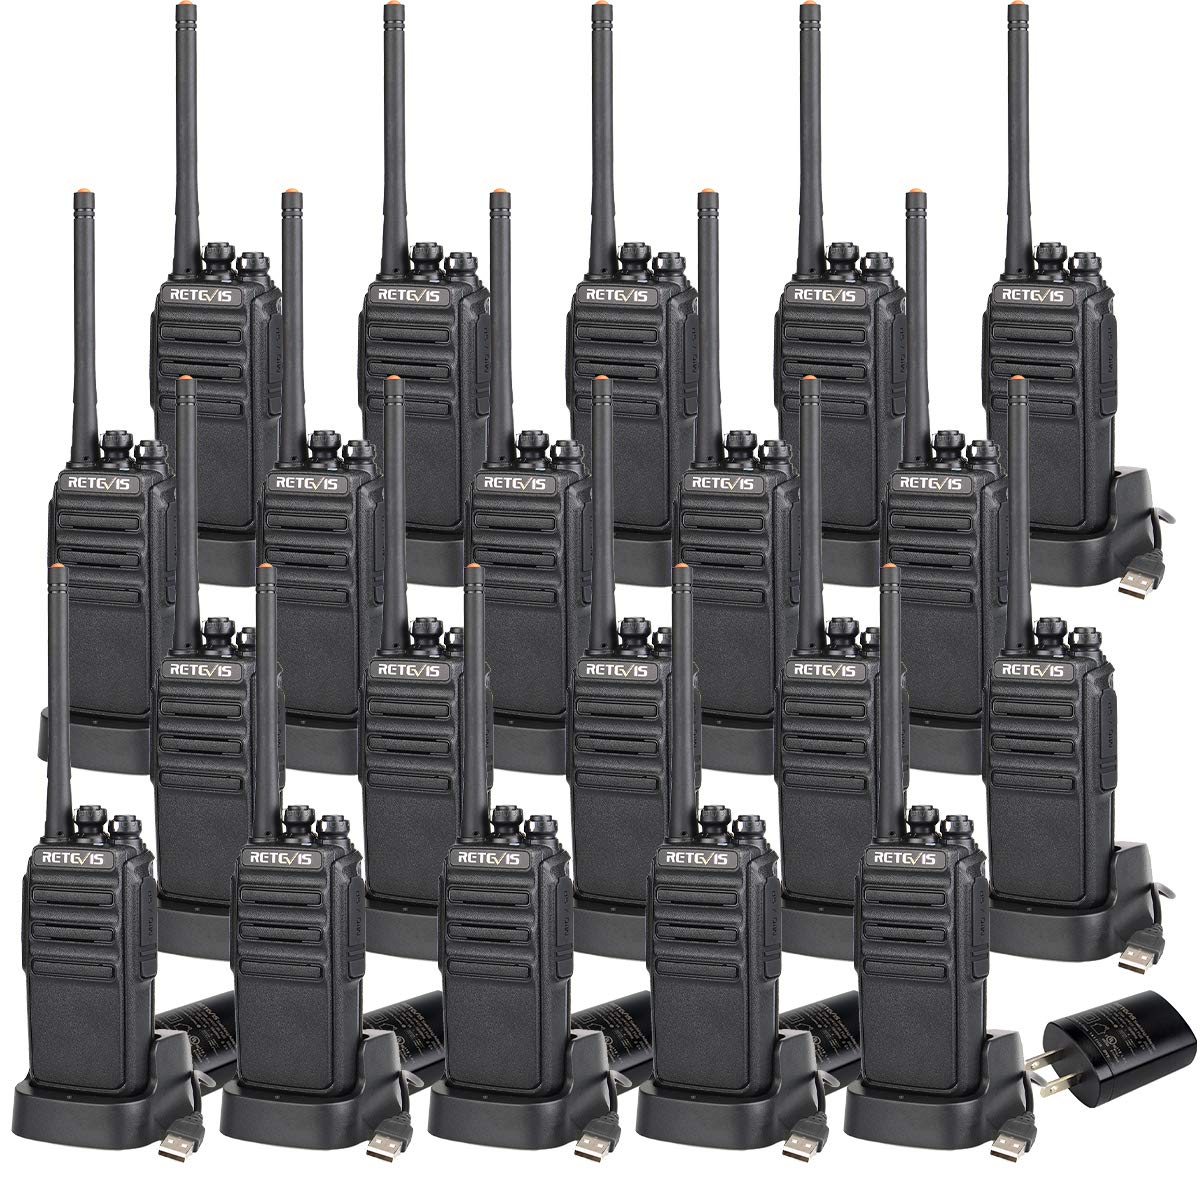 Retevis H-777S 2 Way Radios Walkie Talkies Rechargeable Voice Encrypt Security Monitor Scan Function Two Way Radio Long Range (20 Pack) by Retevis